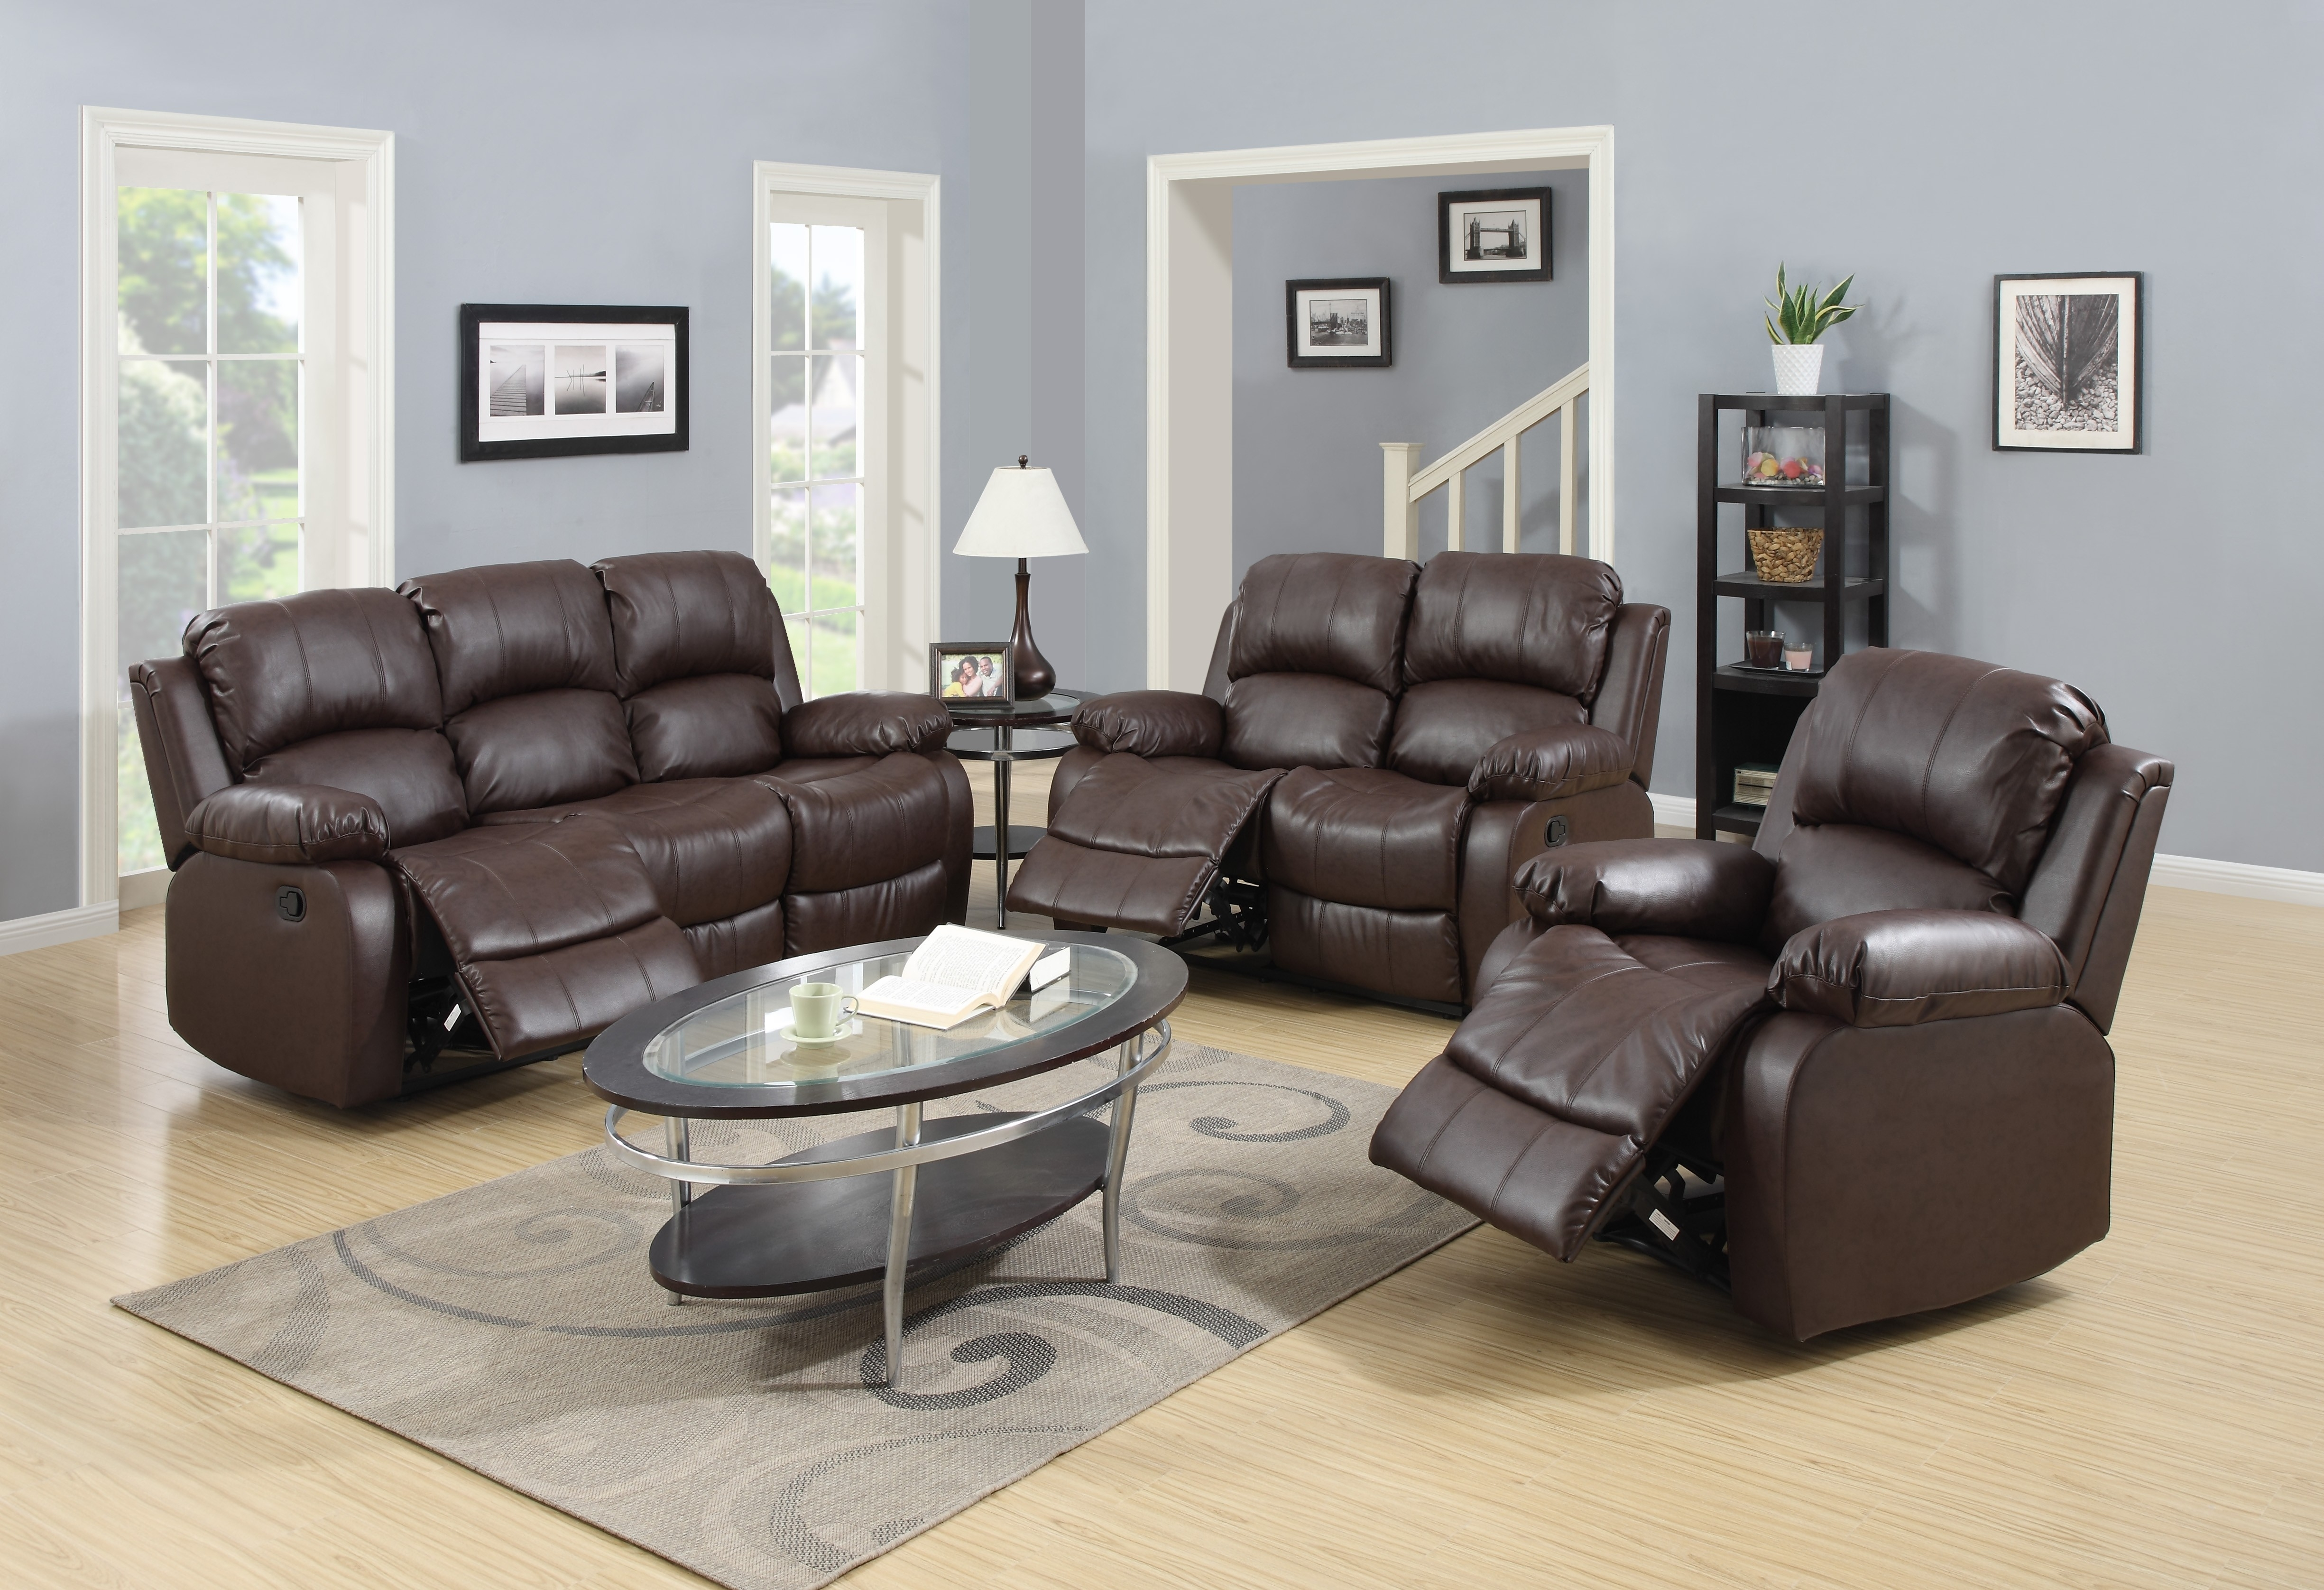 New Sears Sectional Sofa (31 Photos) | Clubanfi Regarding Sears Sectional Sofas (Image 6 of 10)